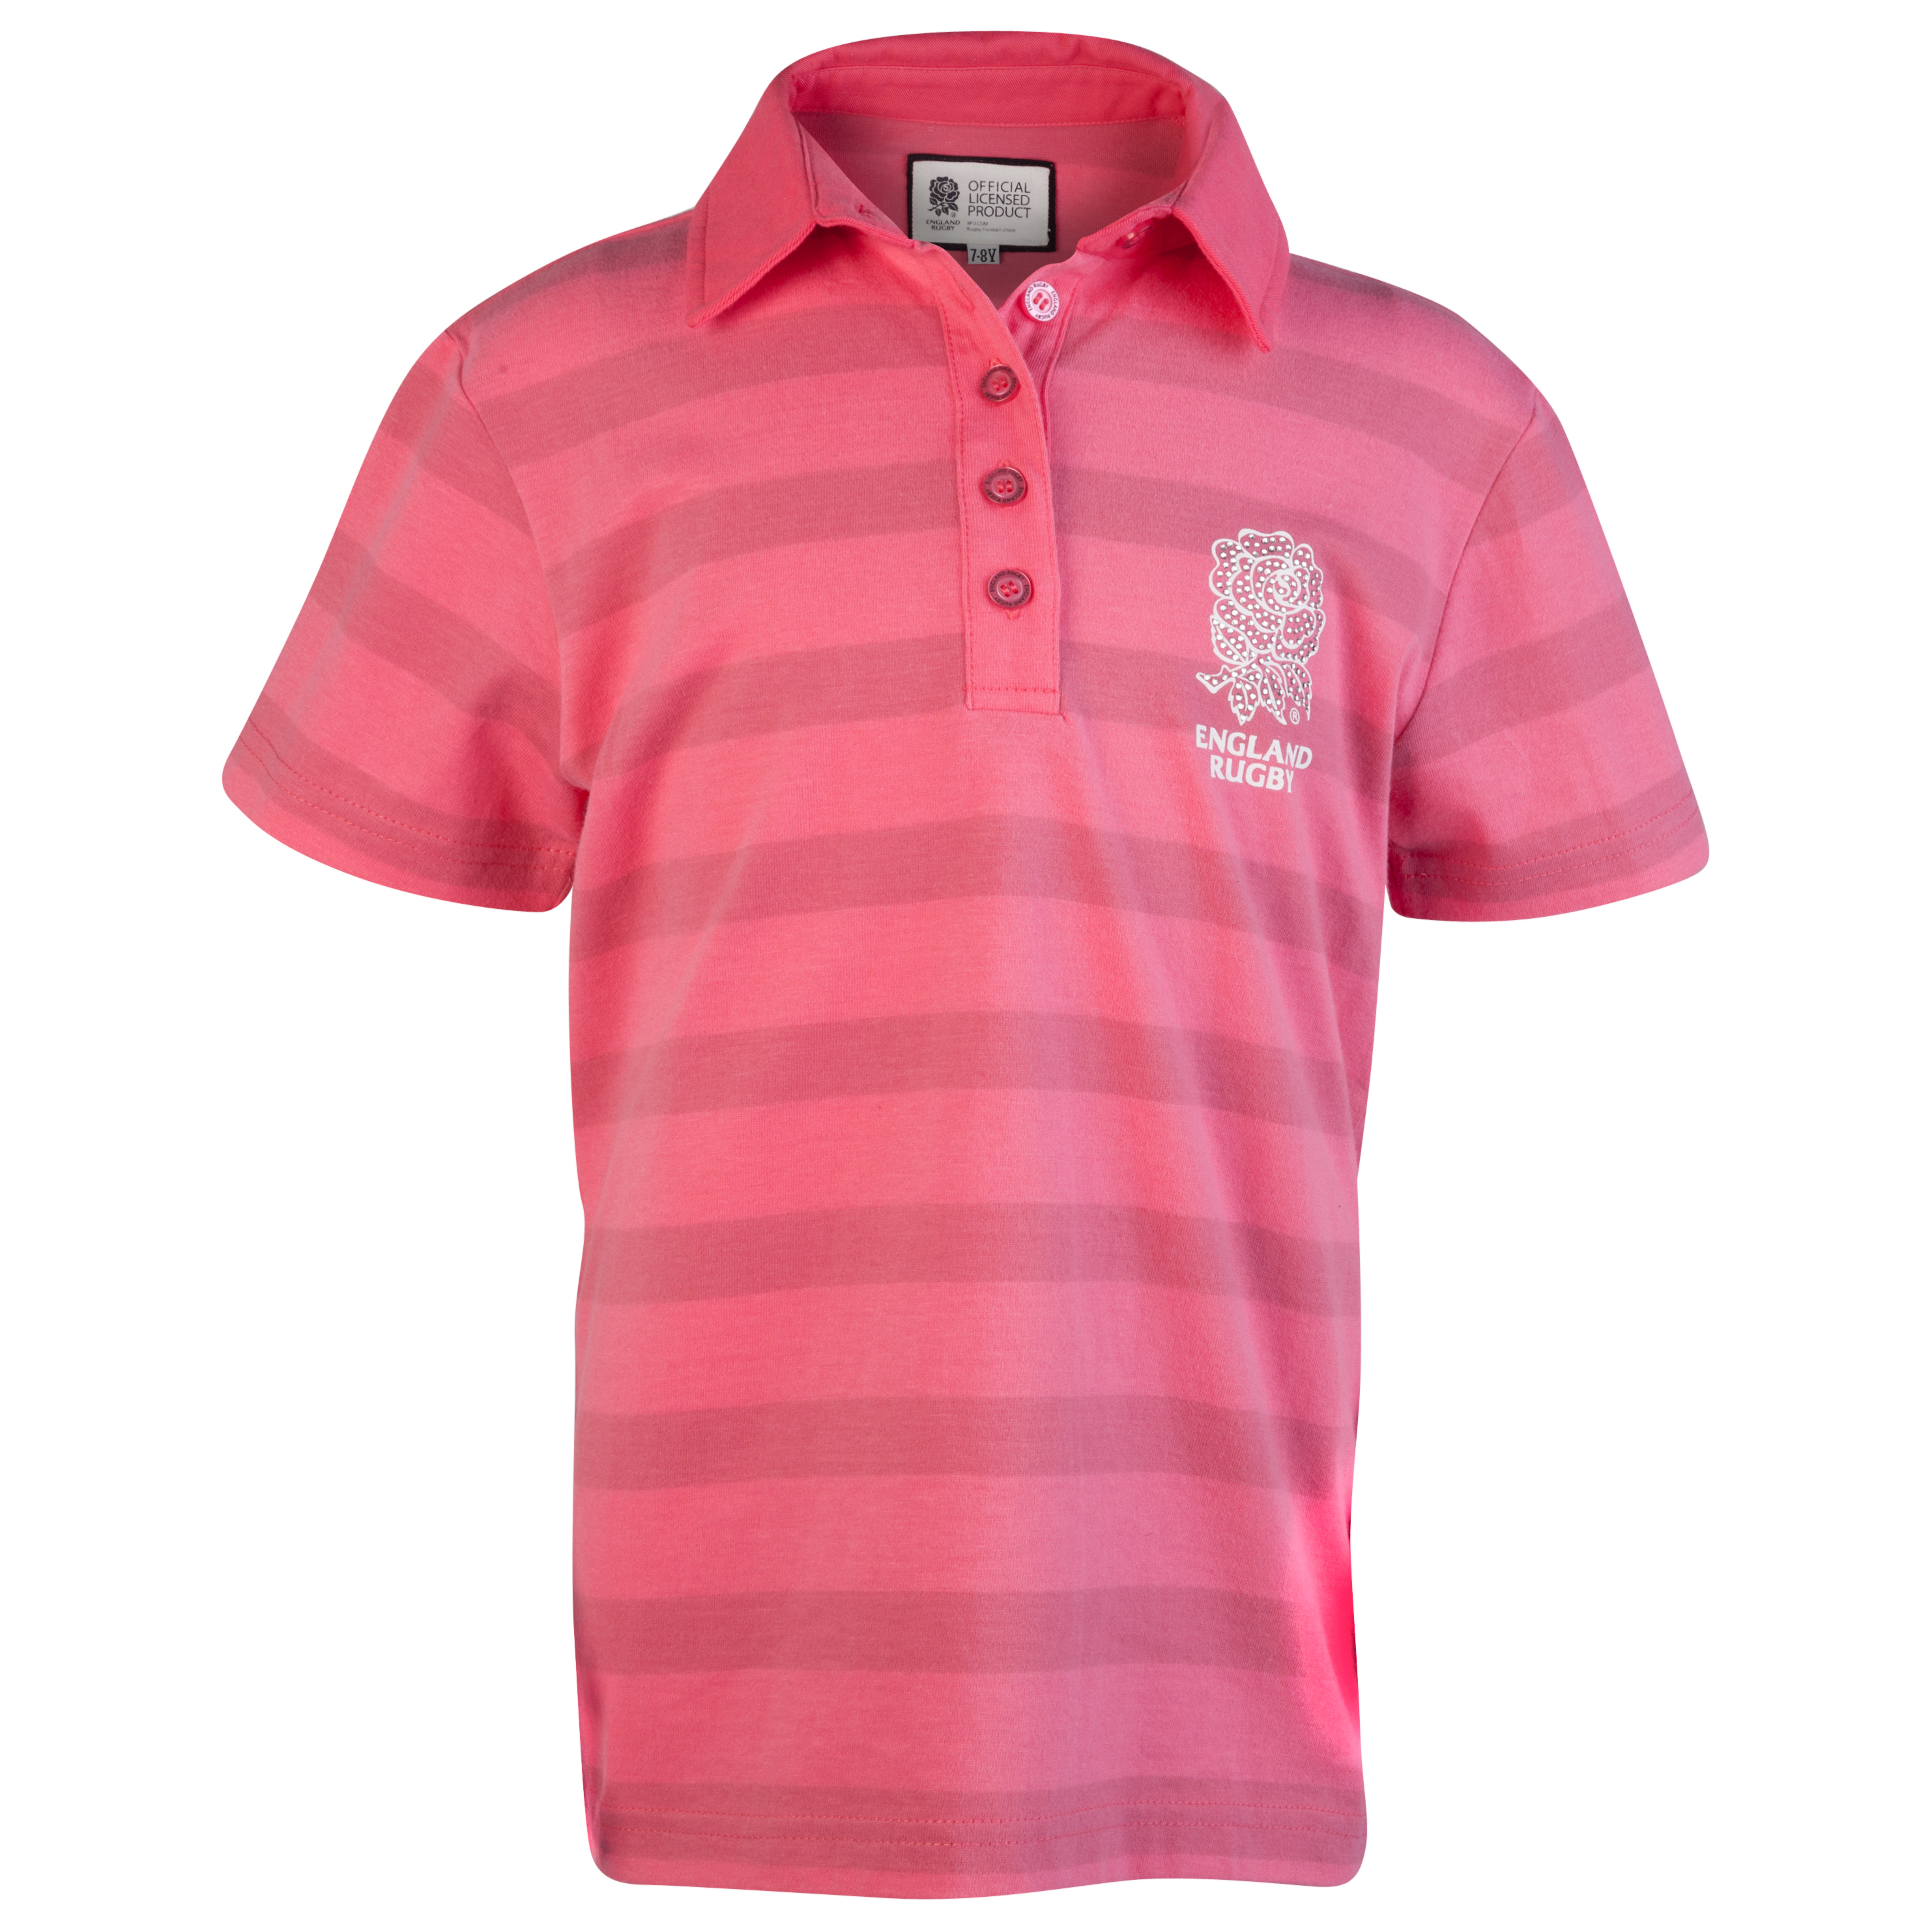 England Rugby Classic Collection Stiped Polo - Pink - Older Girls